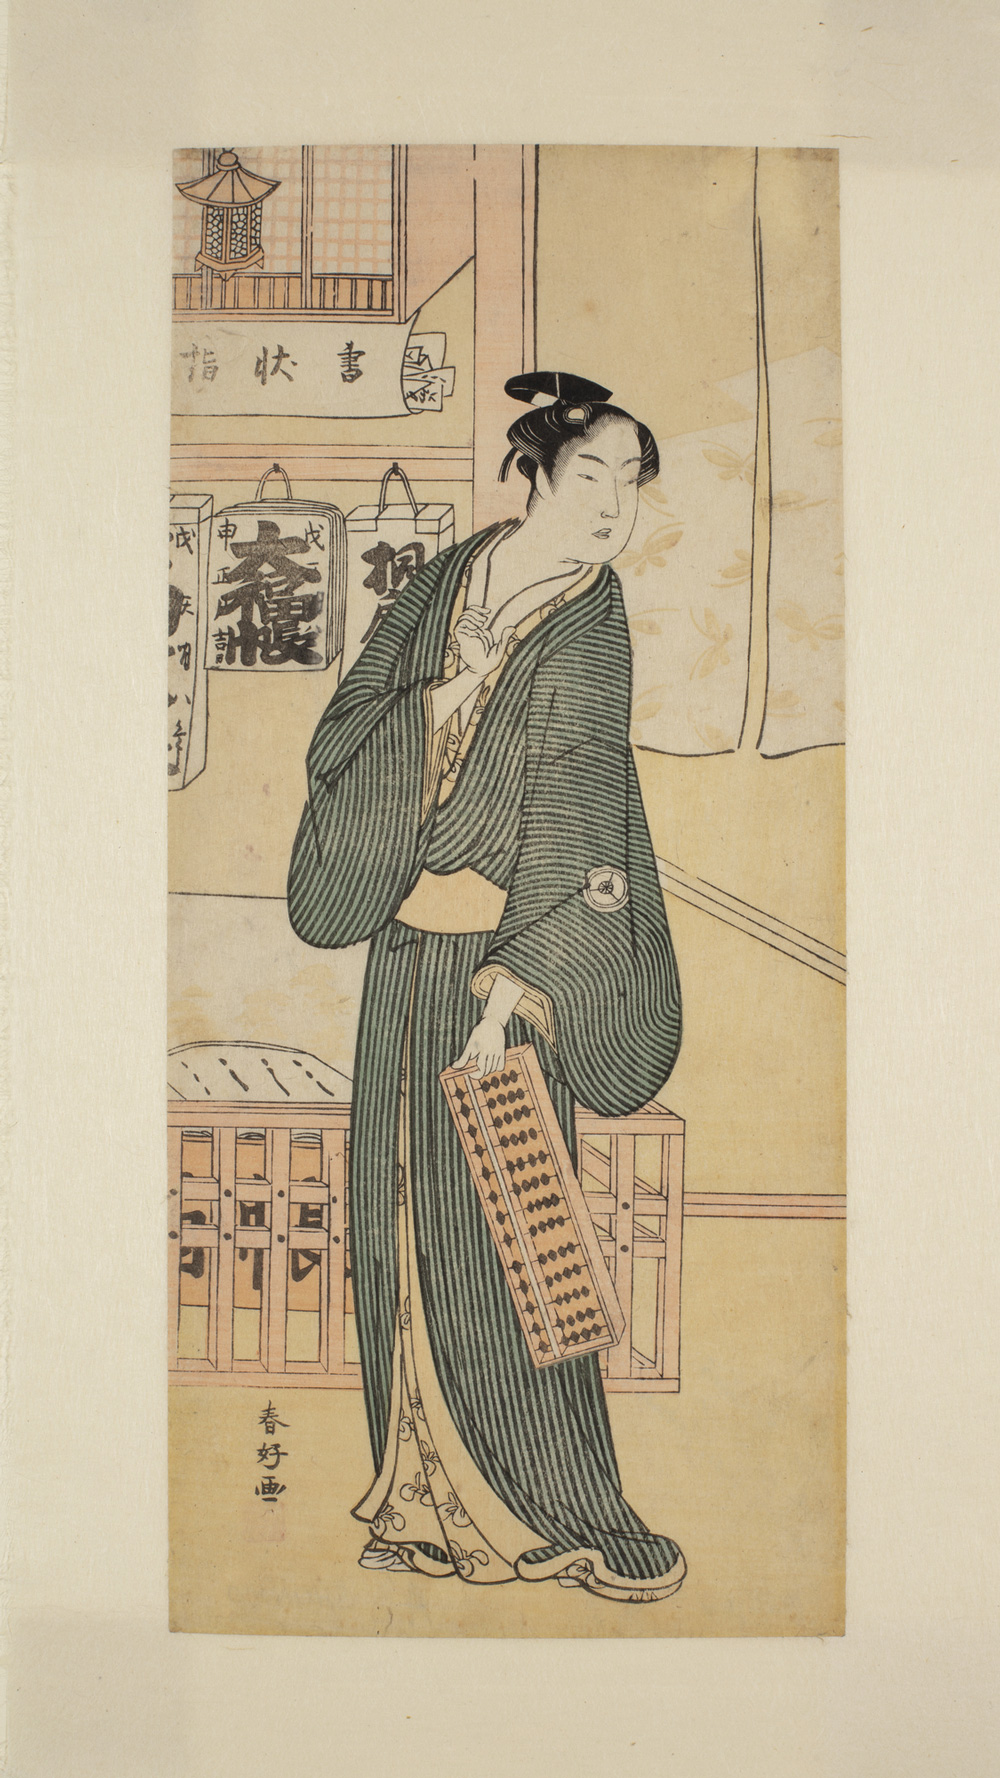 A Japanese print of a man standing and dressed in traditional robes holding an abacus.